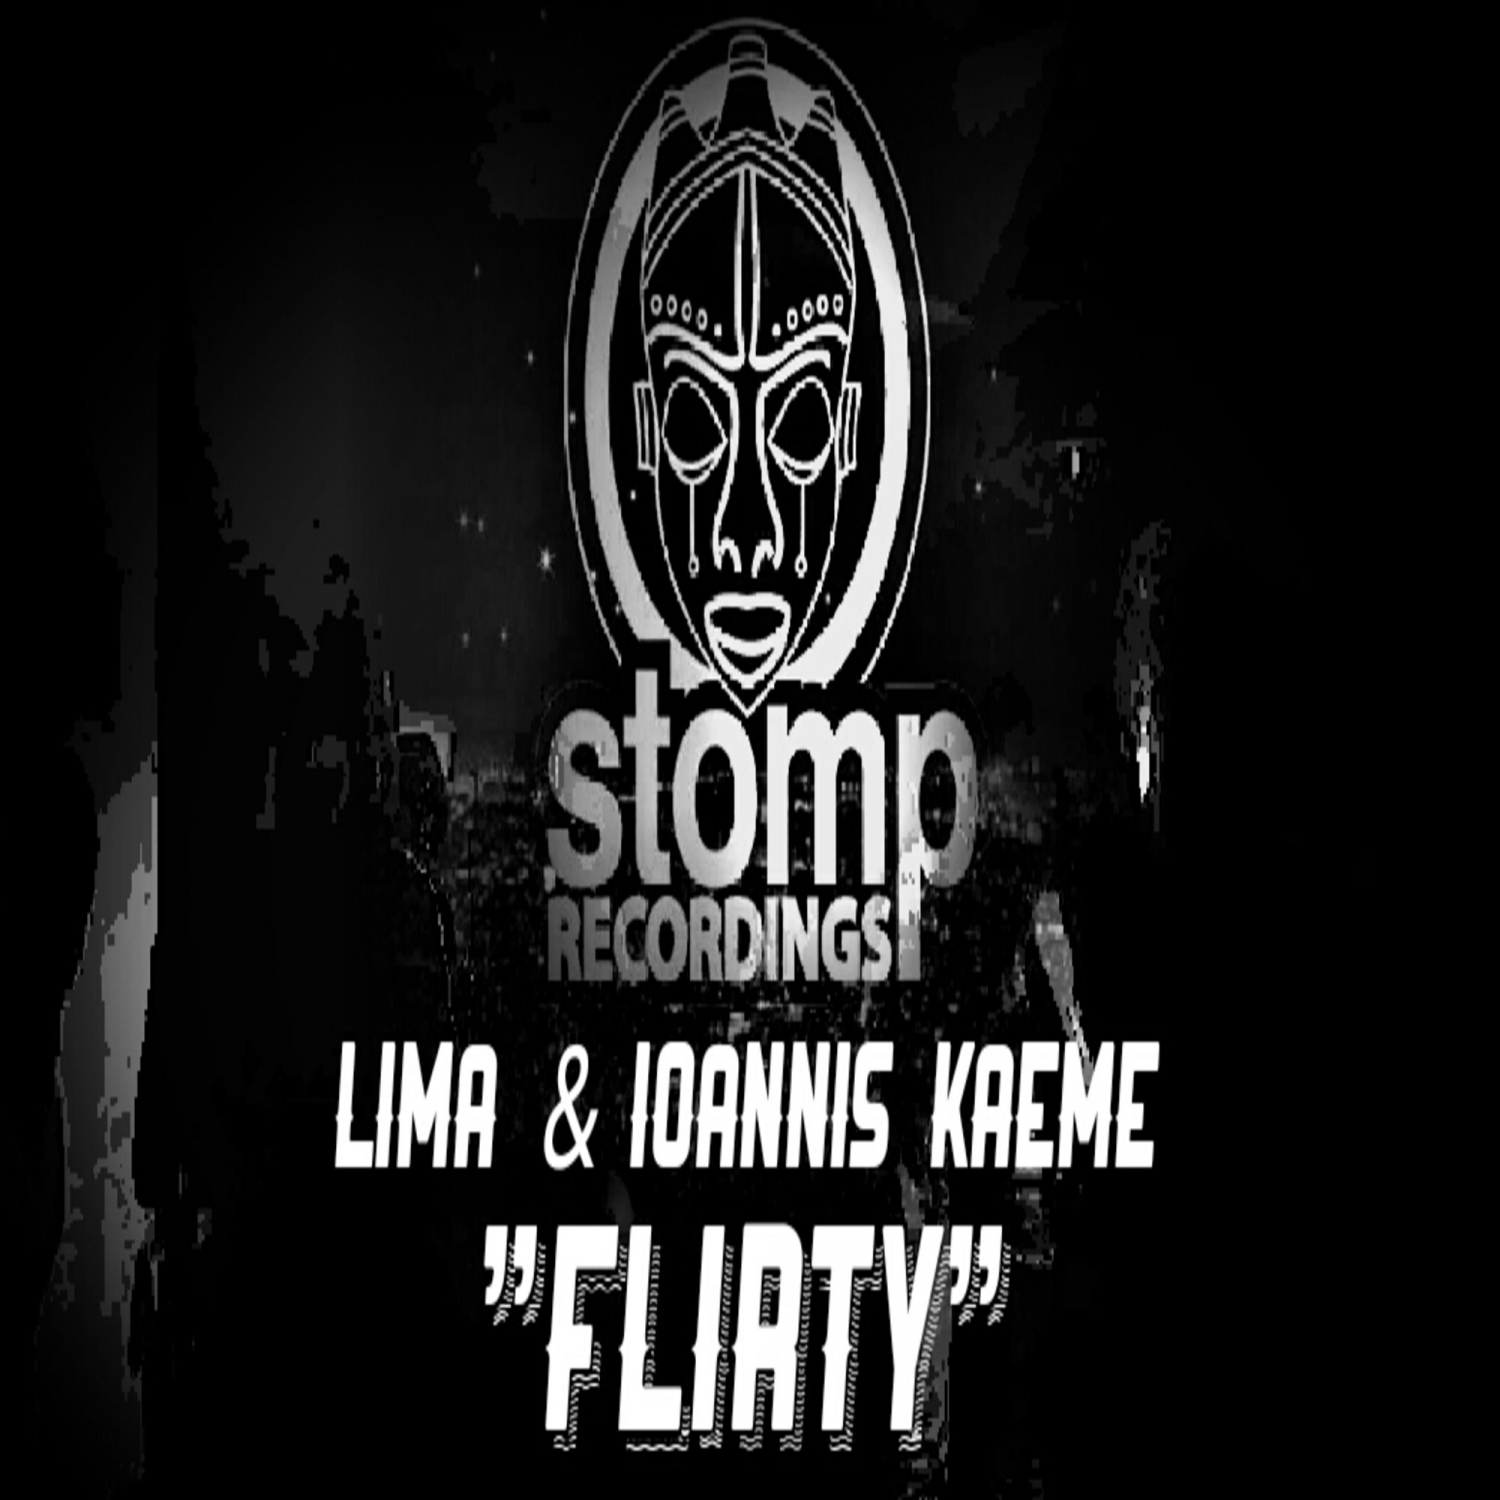 Lima & Ioannis Kaeme - Flirty (Original Mix)